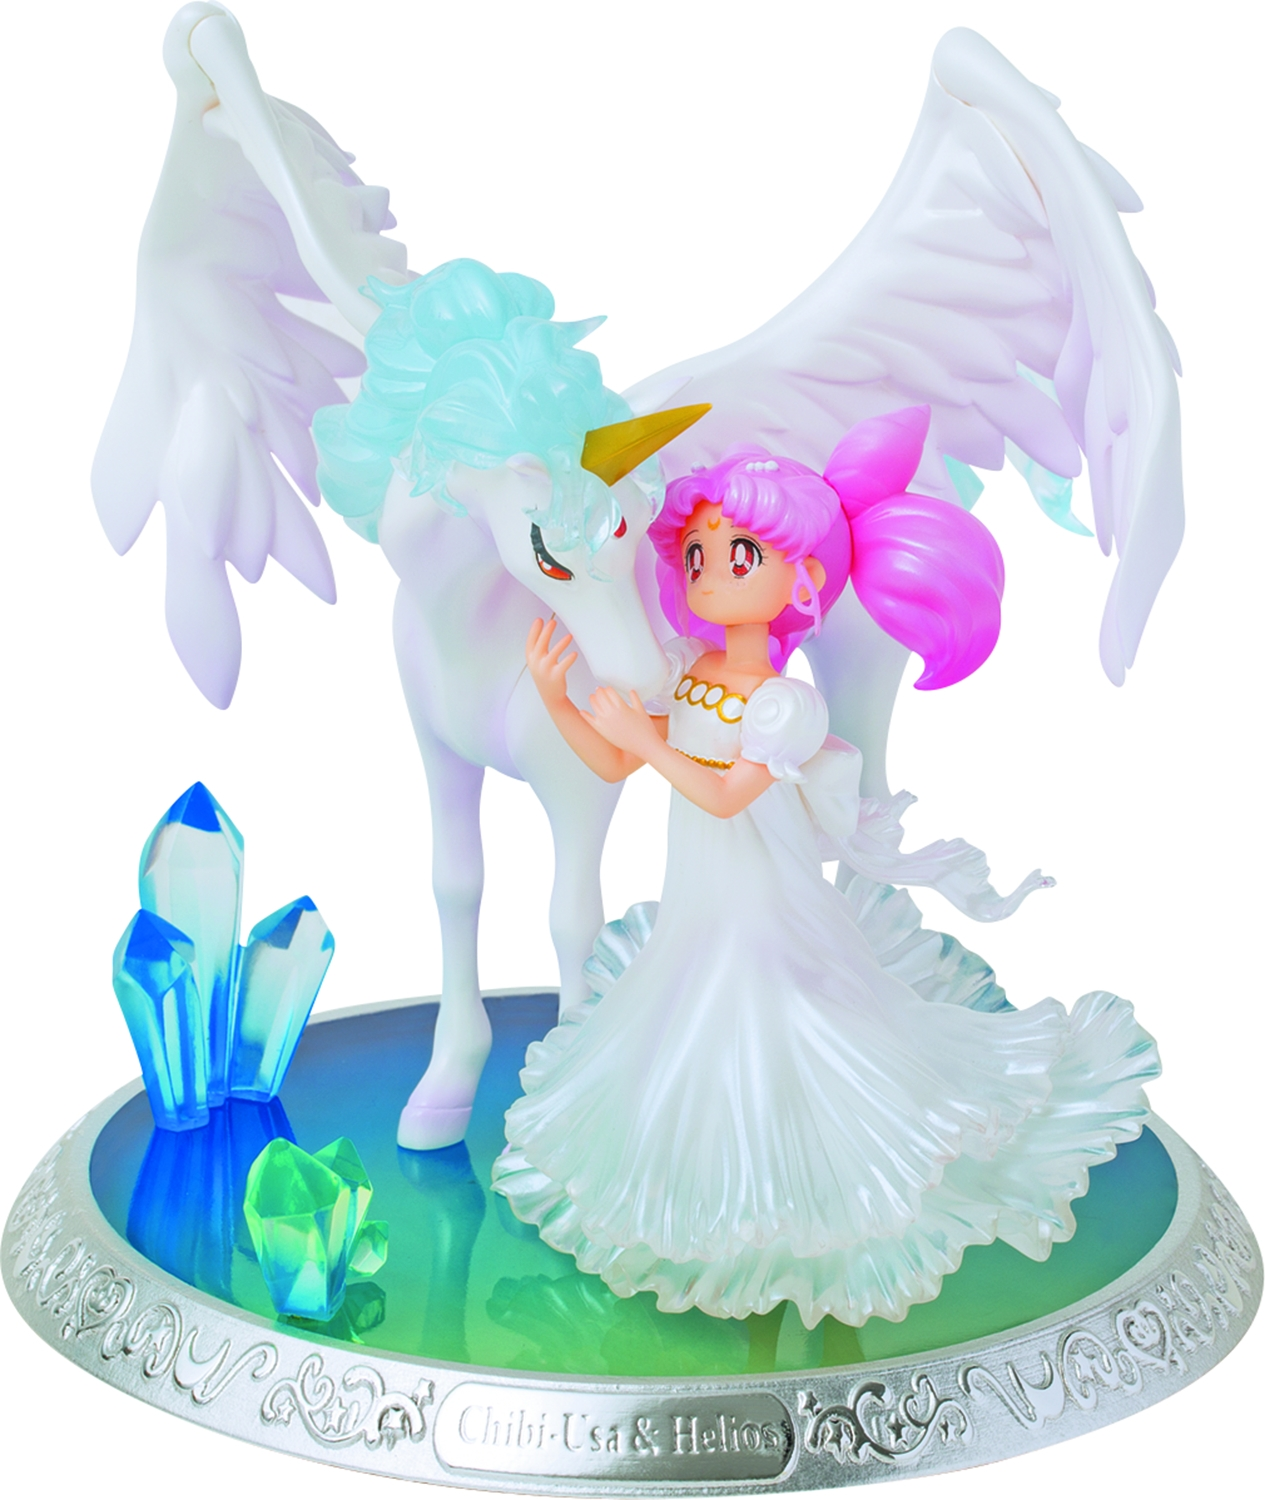 Sailor Moon: Chibi-Usa and Helios (S.H.Figuarts Chouette)